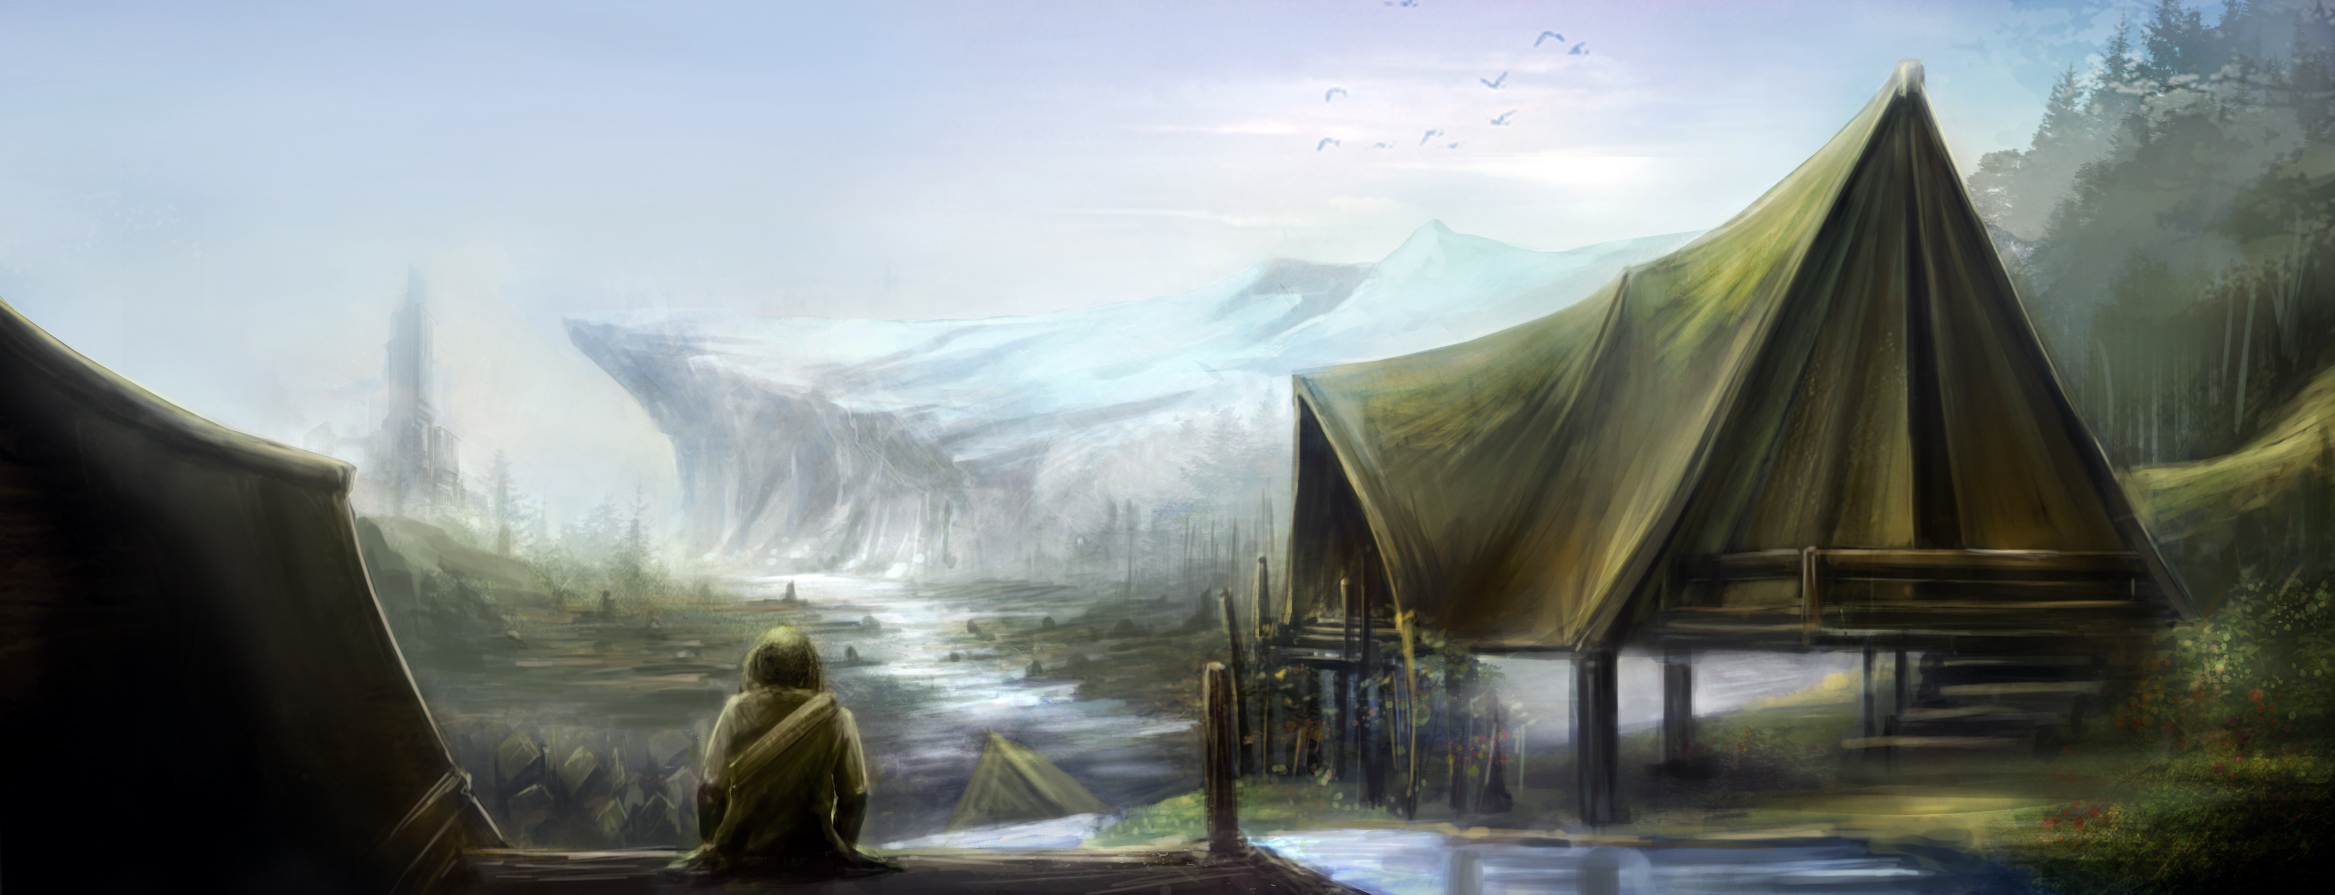 Chapter 2: Desolated Village